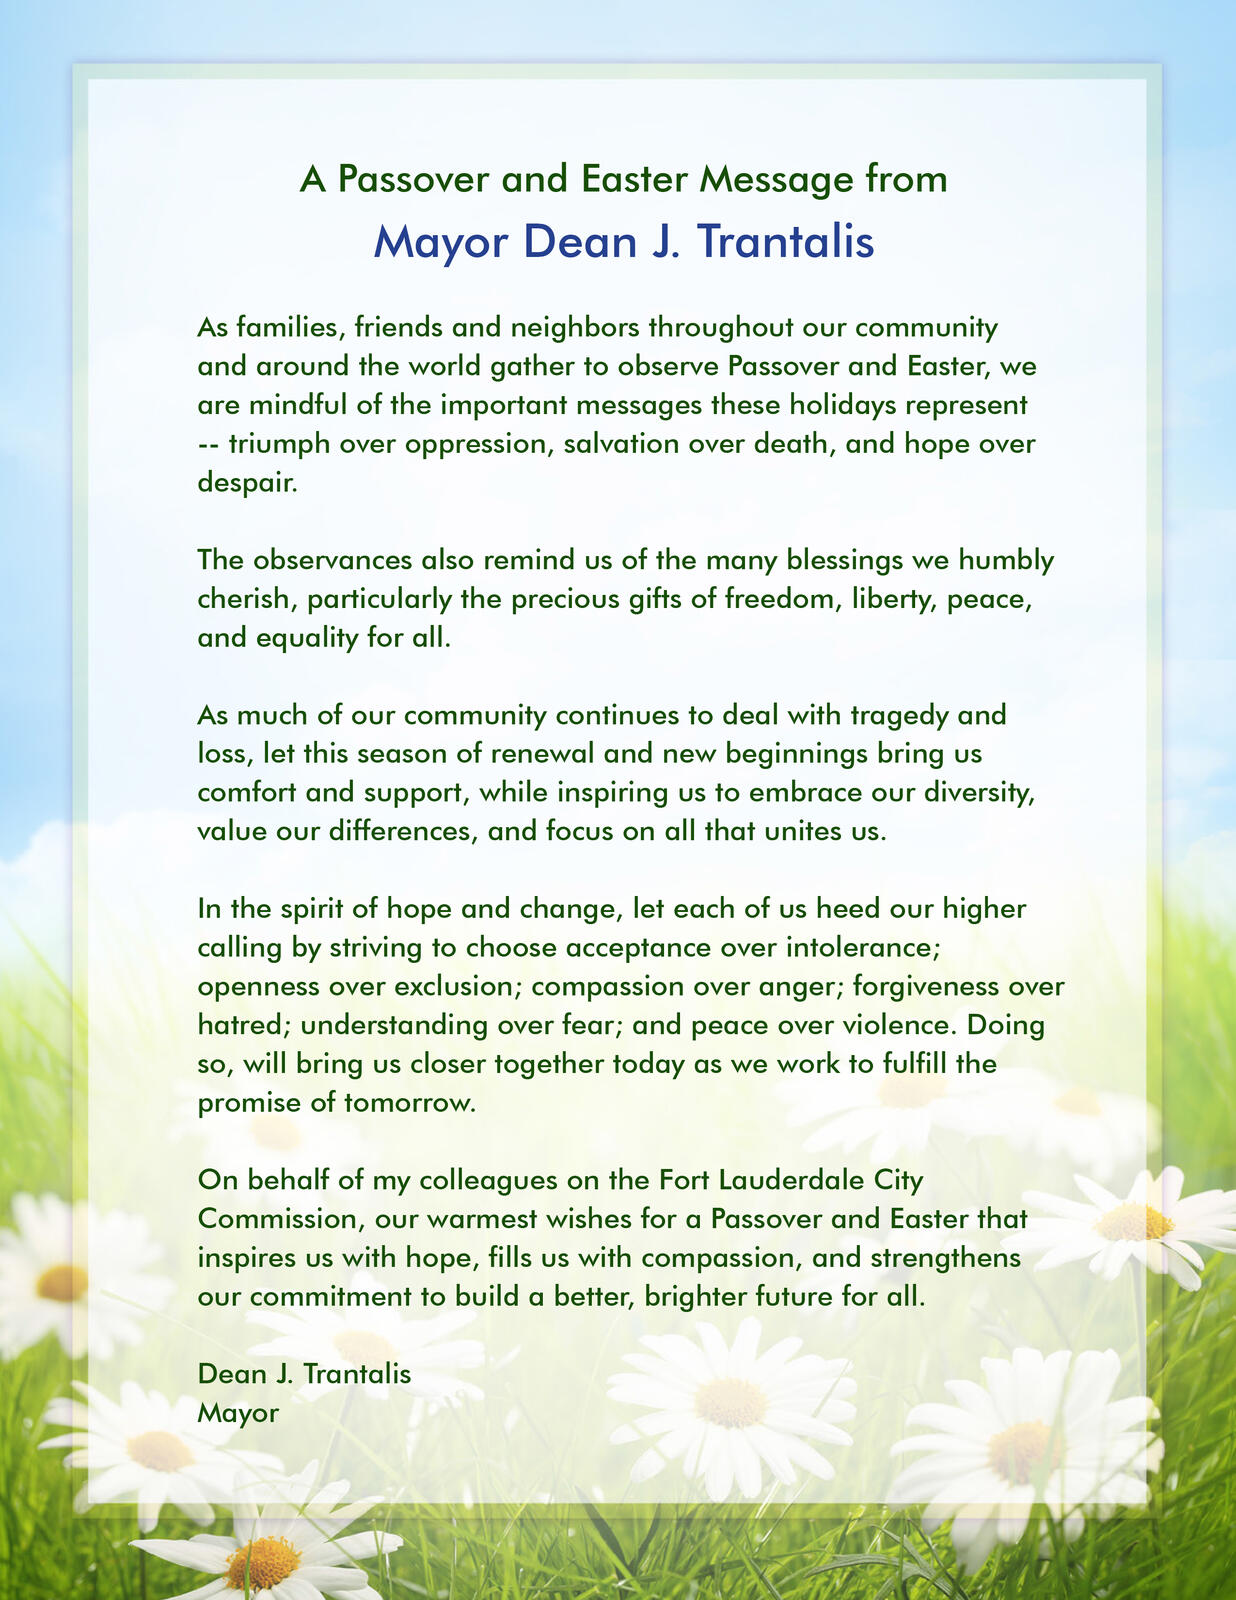 A passover and easter message from mayor dean j trantalis city of a passover and easter message from mayor dean j trantalis city of fort lauderdale nextdoor negle Images